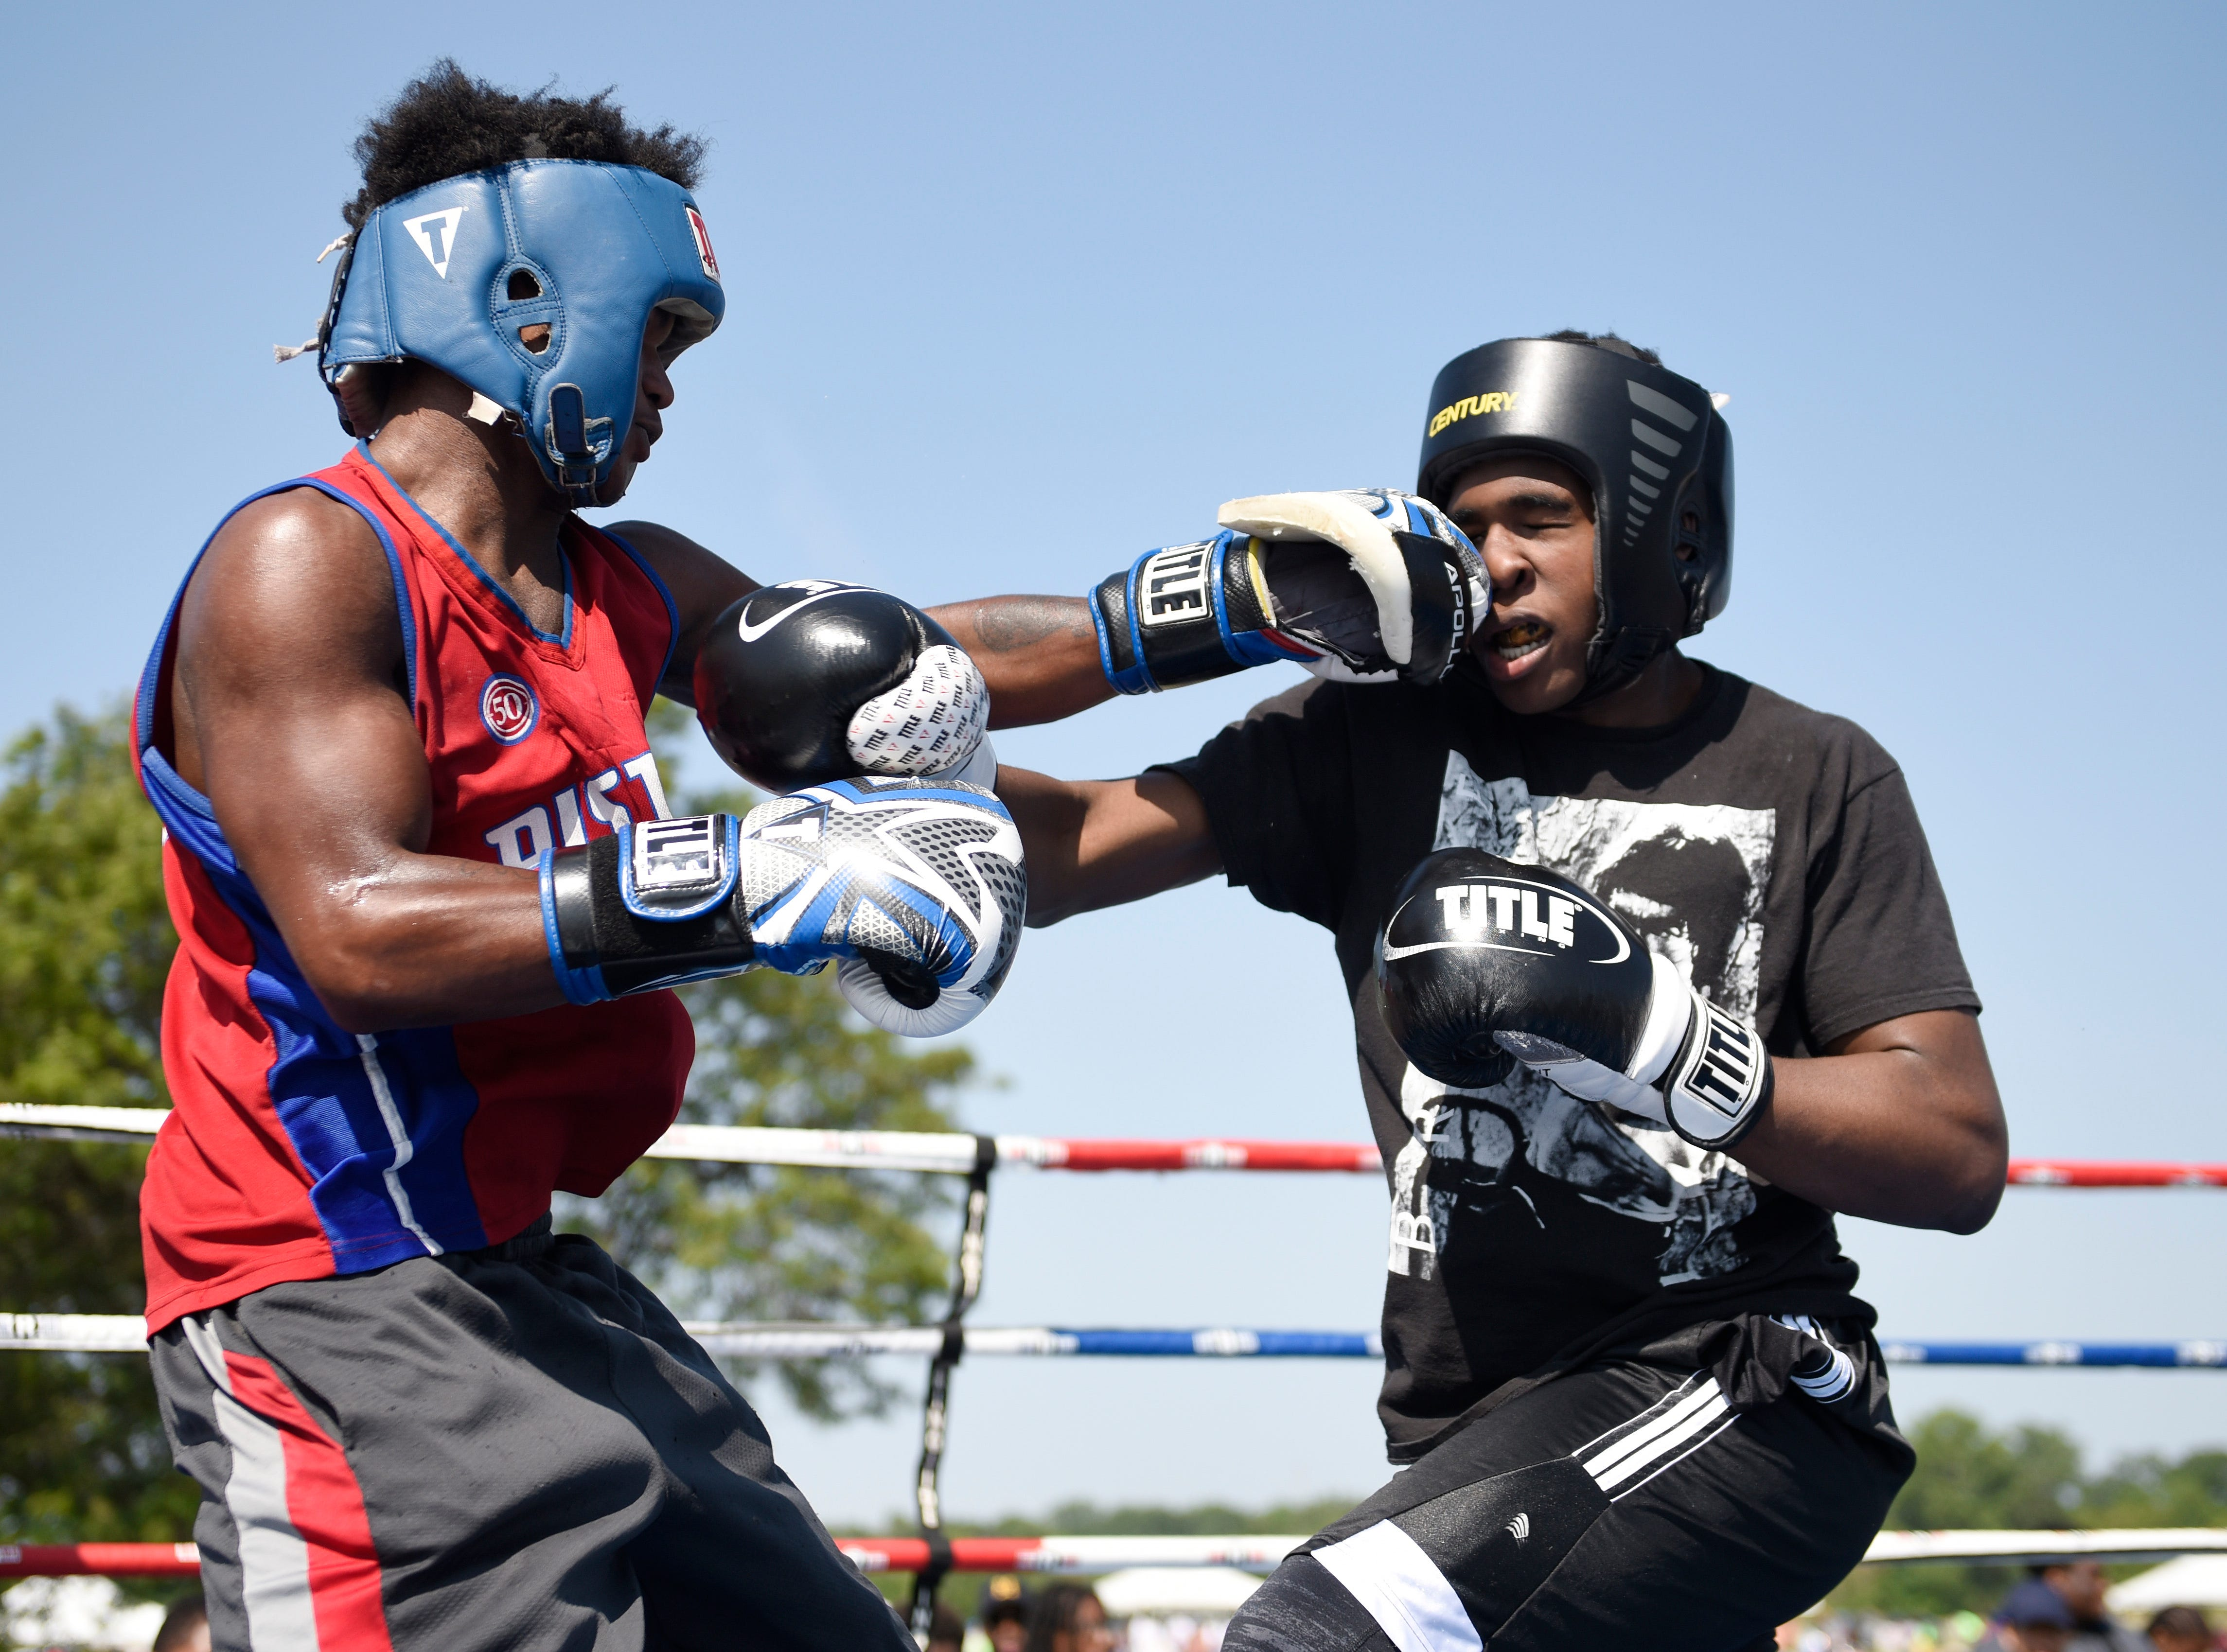 Deonte Cheeves, left, 18, and DeAndre Madison,15, both of the Jimmie Paul Hands On boxing gym, battle in the ring during a match at the 36th Annual Metro Detroit Youth Day at Belle Isle park in Detroit on July, 11, 2018.